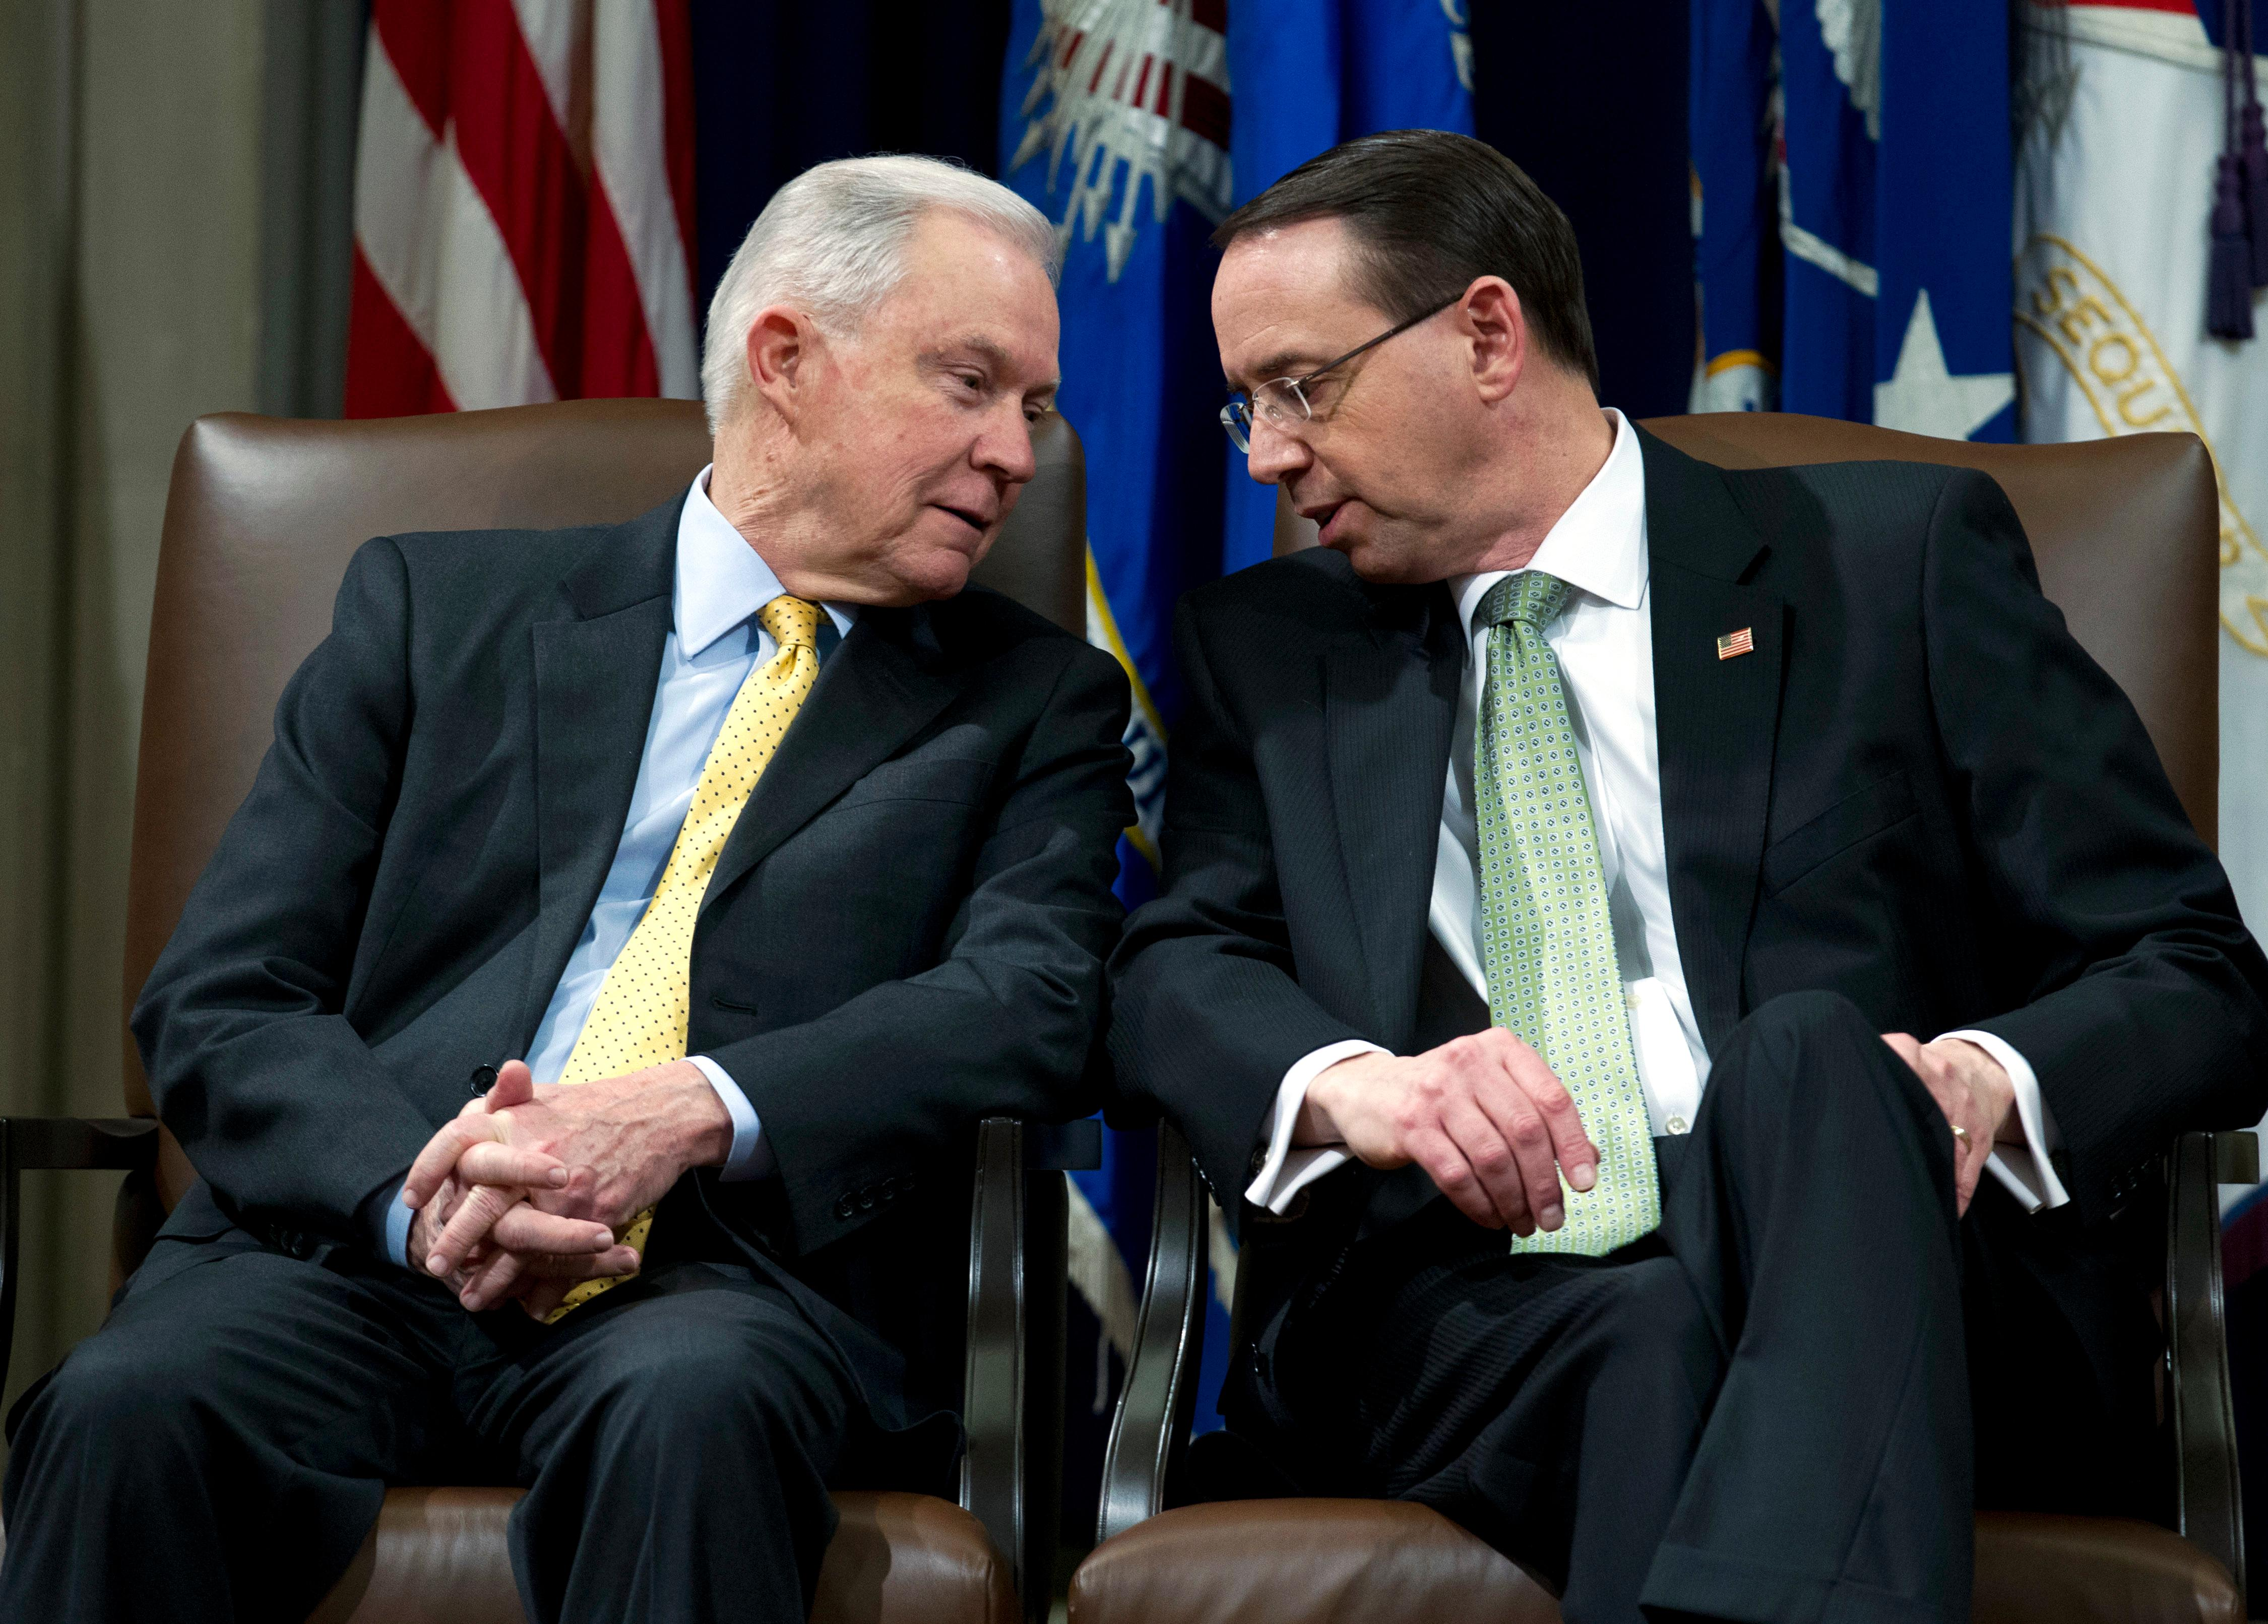 Attorney General Jeff Sessions speaks with Deputy Attorney General Rod Rosenstein, during the opening of the summit on Efforts to Combat Human Trafficking at Department of Justice in Washington, Friday, Feb. 2, 2018. President Donald Trump, dogged by an unrelenting investigation into his campaign's ties to Russia, lashes out at the FBI and Justice Department as politically biased ahead of the expected release of a classified Republican memo criticizing FBI surveillance tactics.  (AP Photo/Jose Luis Magana)